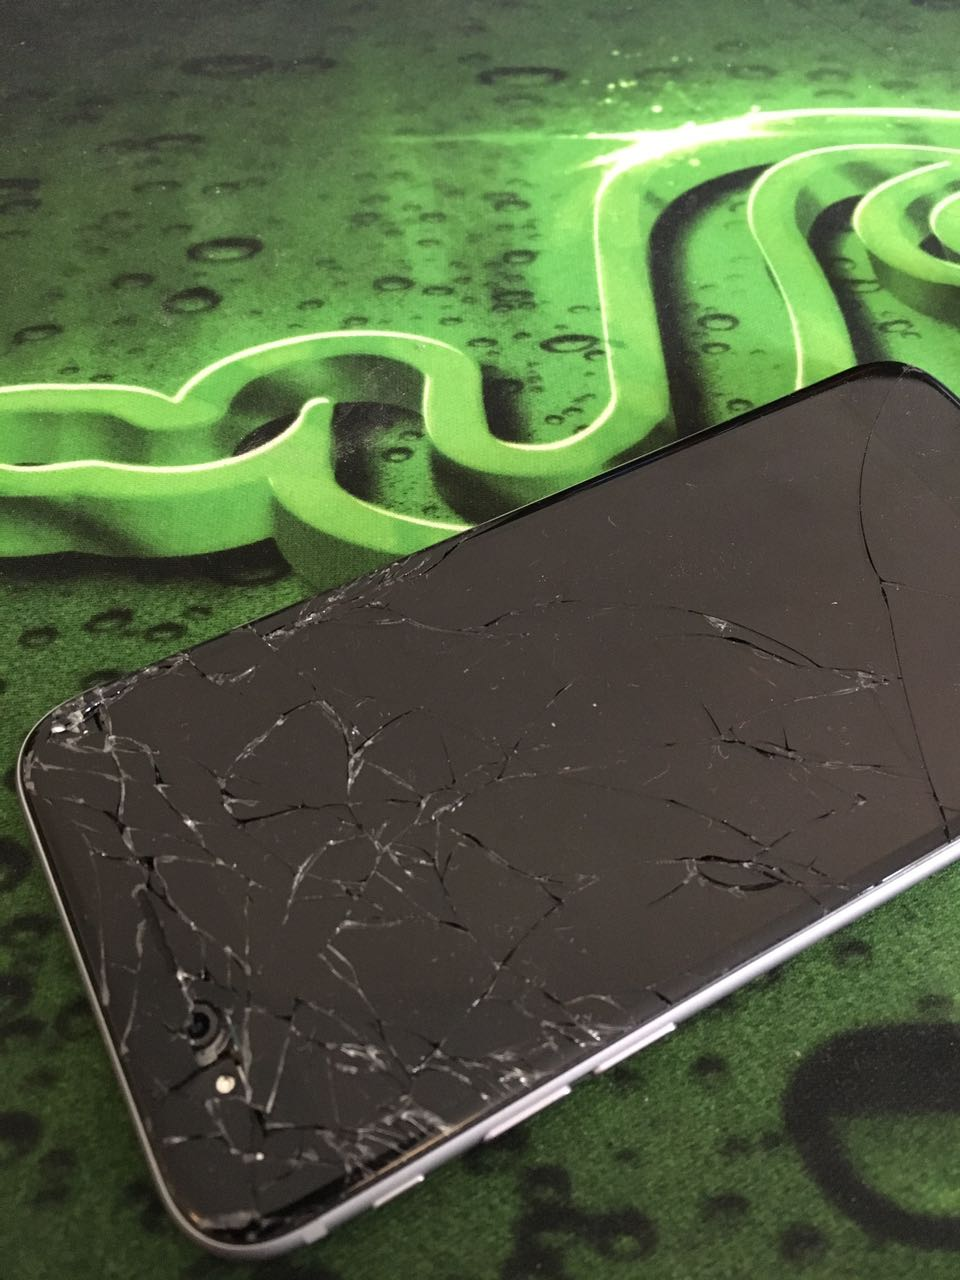 Cracked iPhone Screen Repair in Detroit